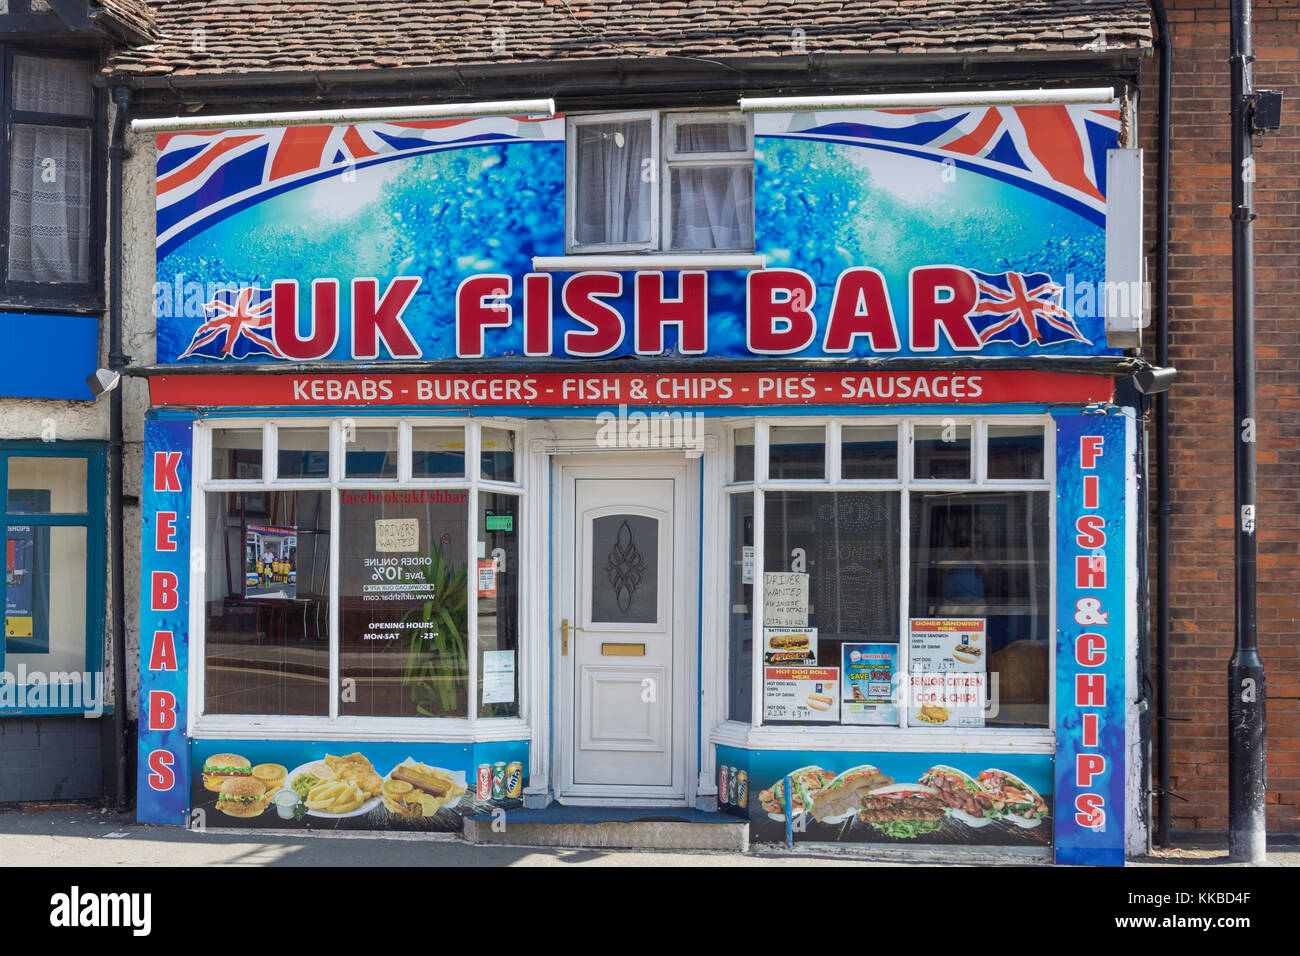 Fish and chip restaurant stock photos fish and chip for Fish chips restaurant